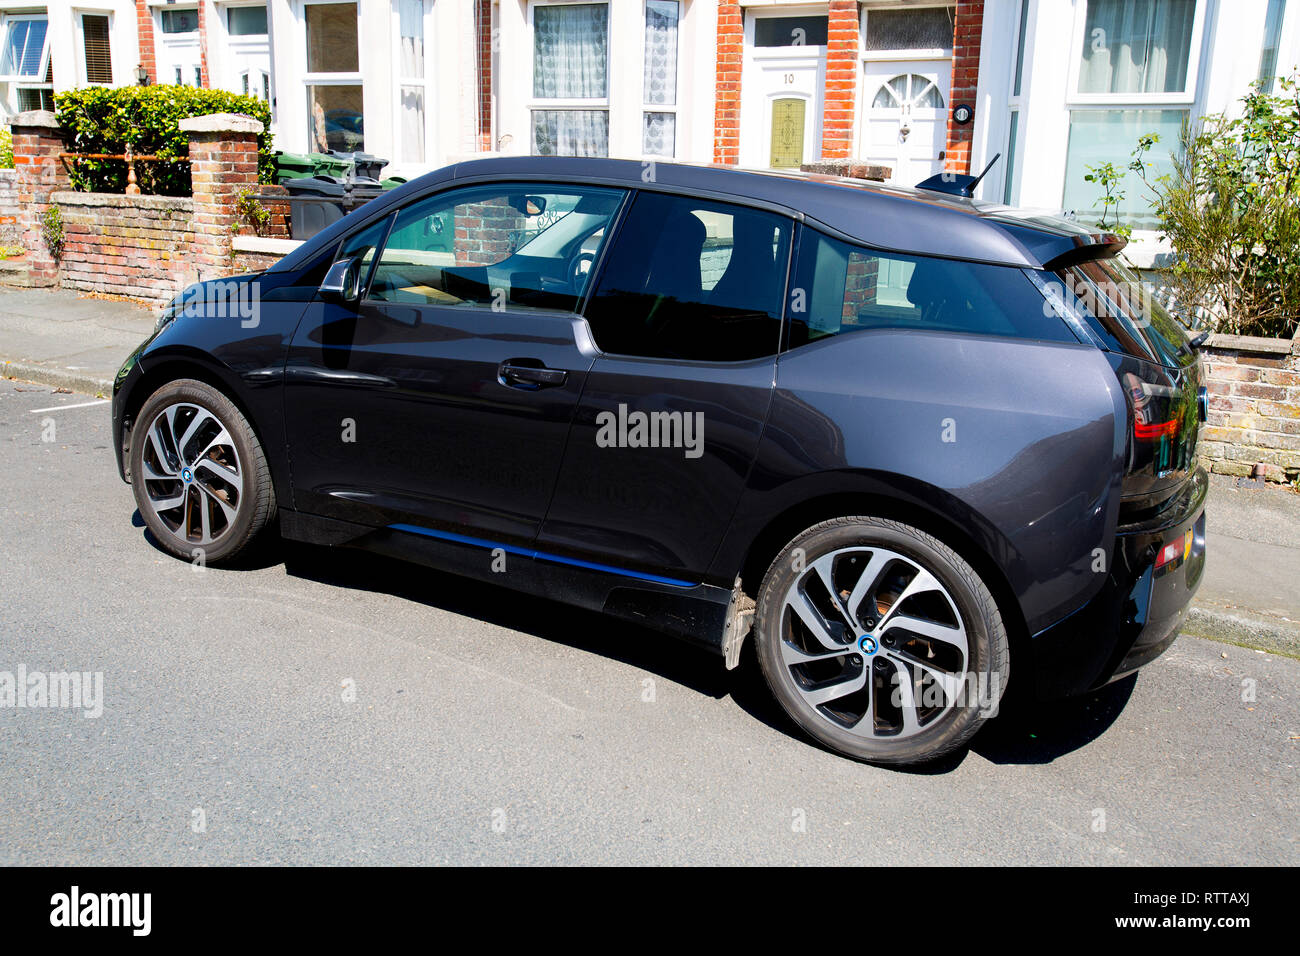 BMW, electric, car, EV, parked, England, road, charge, Cowes,Isle of Wight, UK, - Stock Image